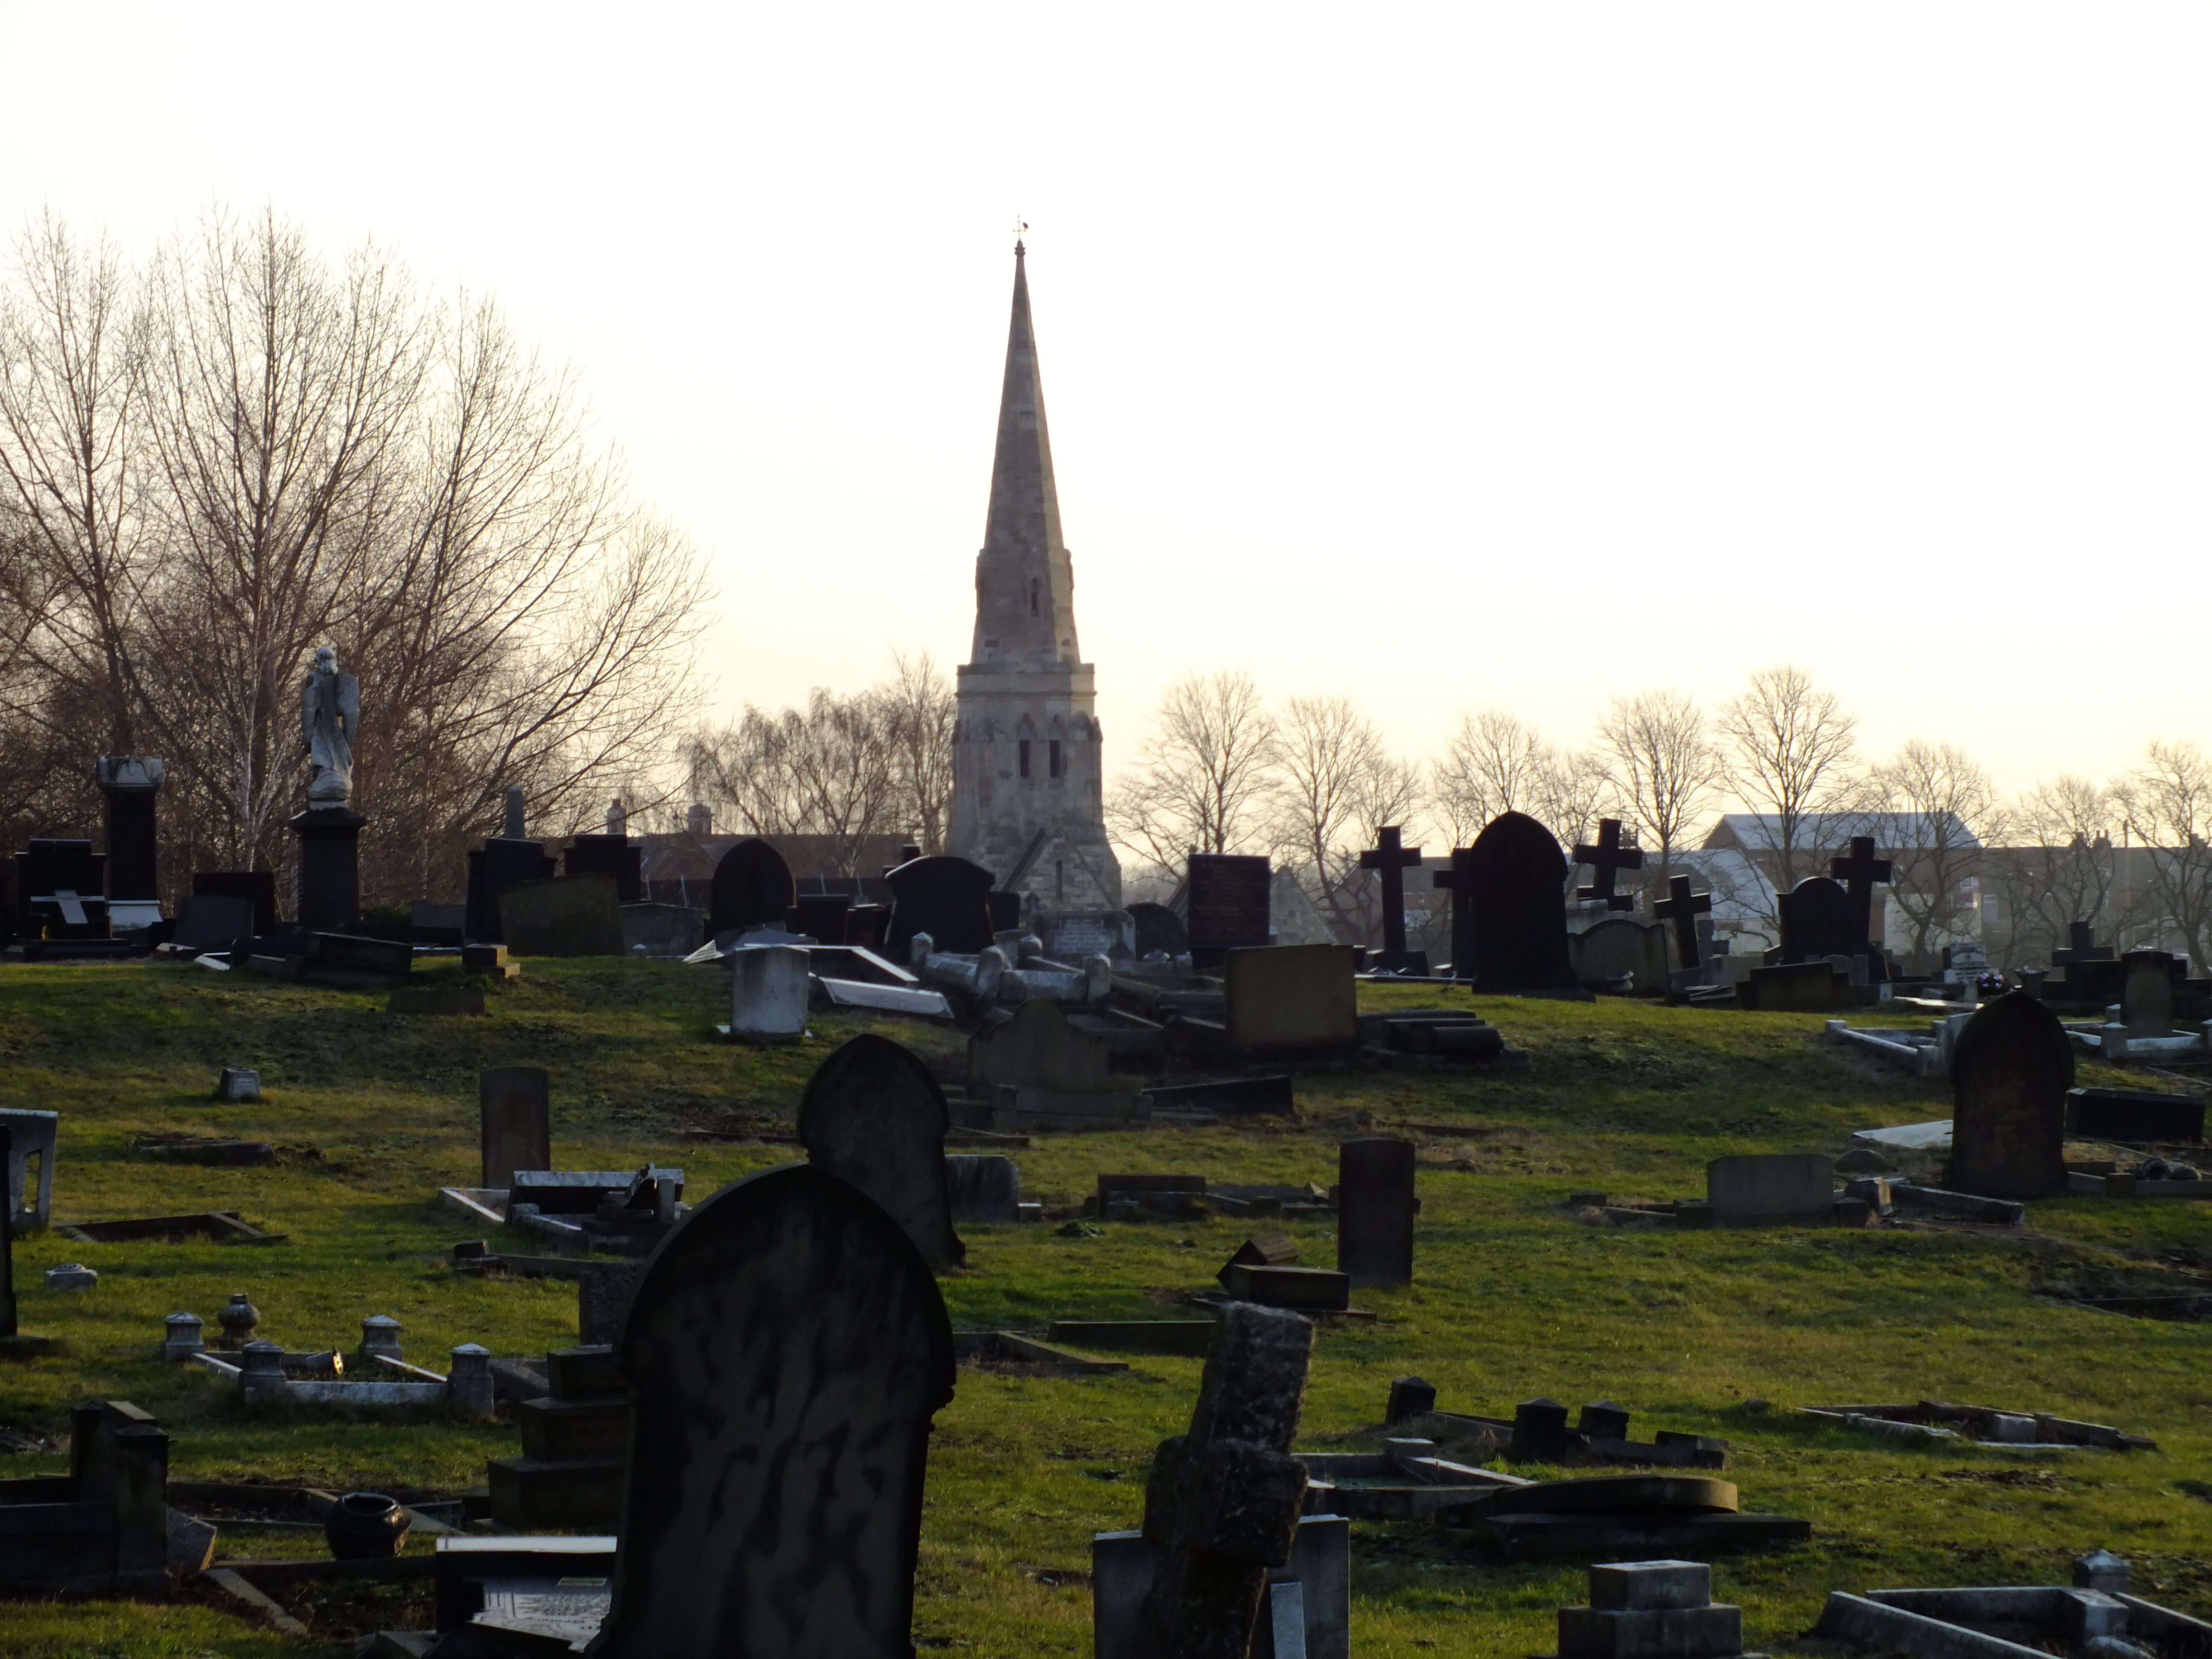 Cemetry, Church, Graveyard, Tombs, HQ Photo